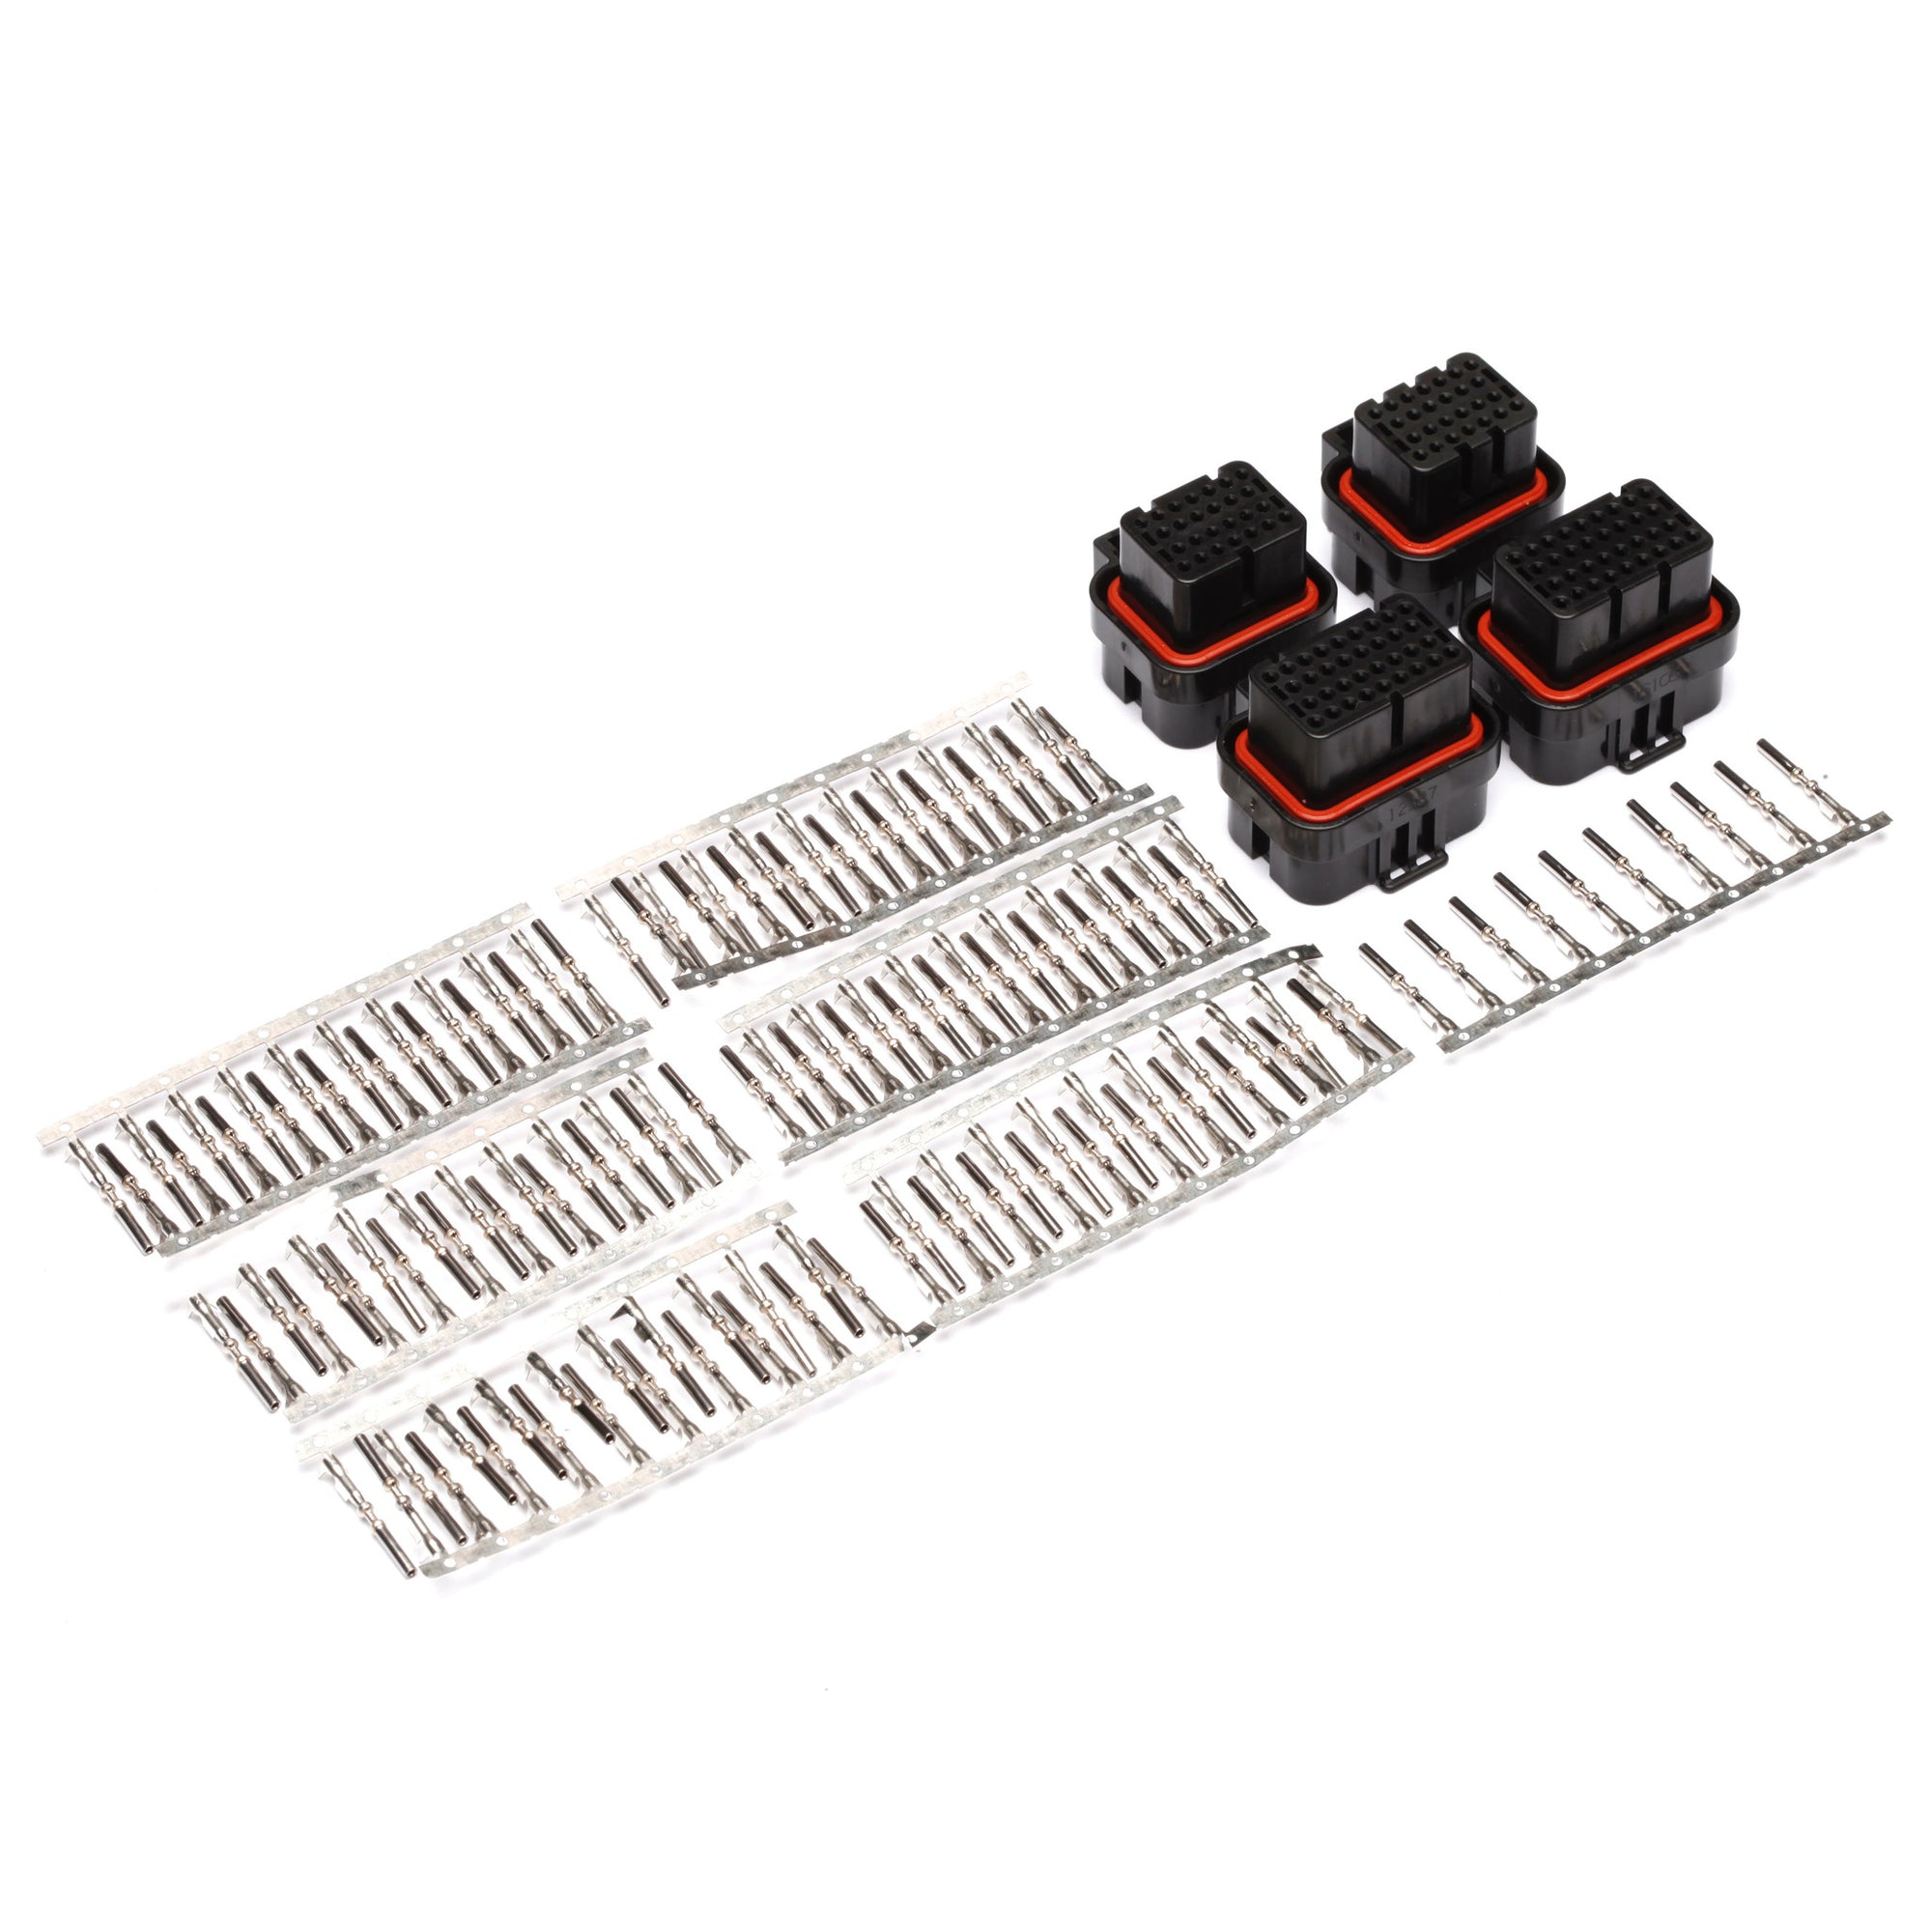 Connectors - MoTeC M150 Connector Kit